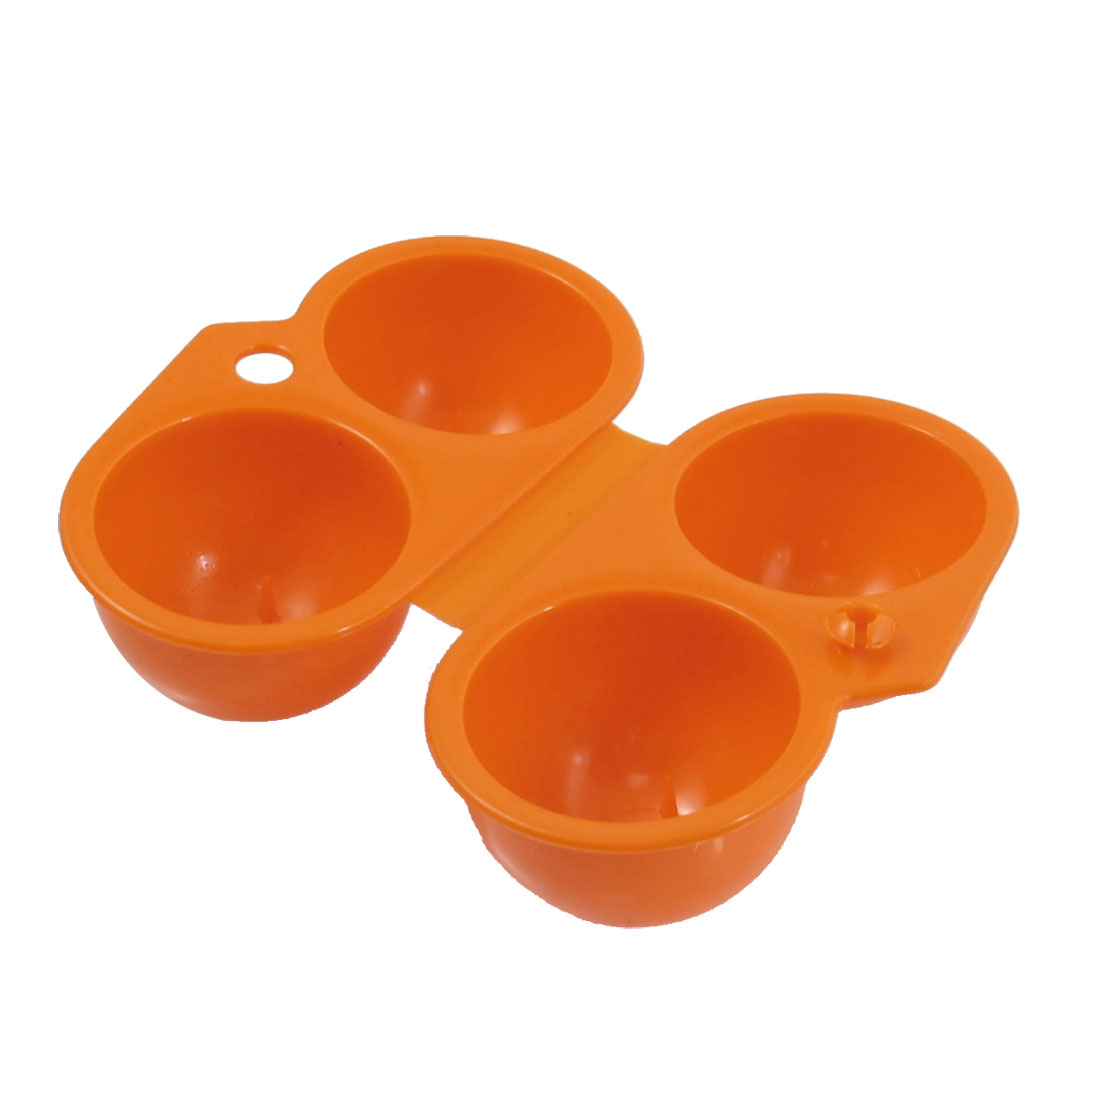 Camping Garden Orange Plastic Foldable Storage Case 2 Egg Holder Carrier